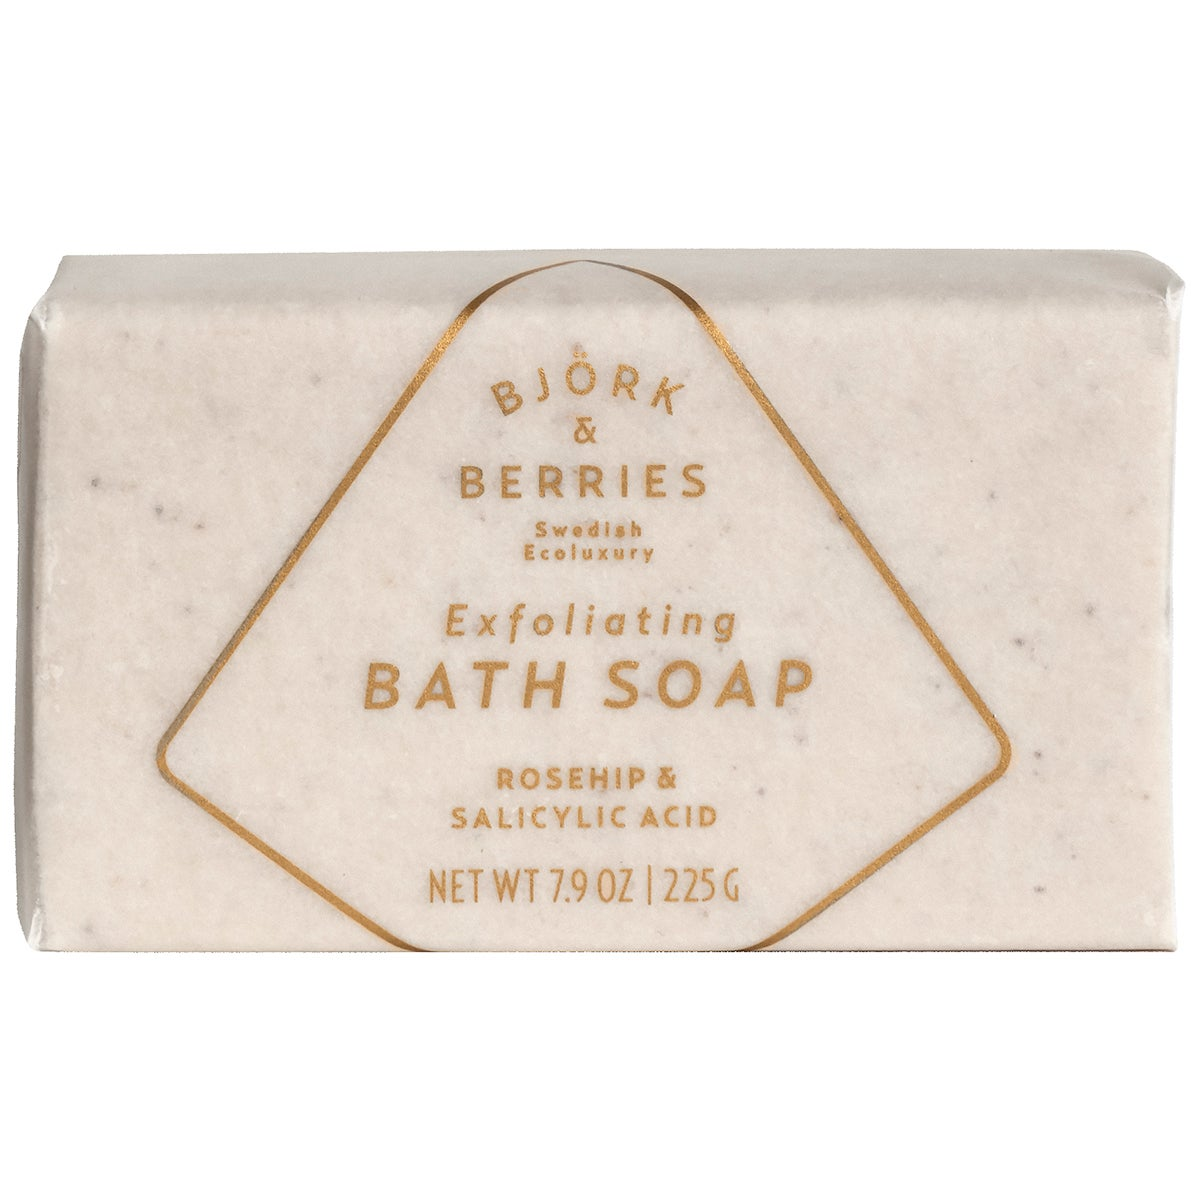 Björk & Berries Exfolitaing Bath Soap